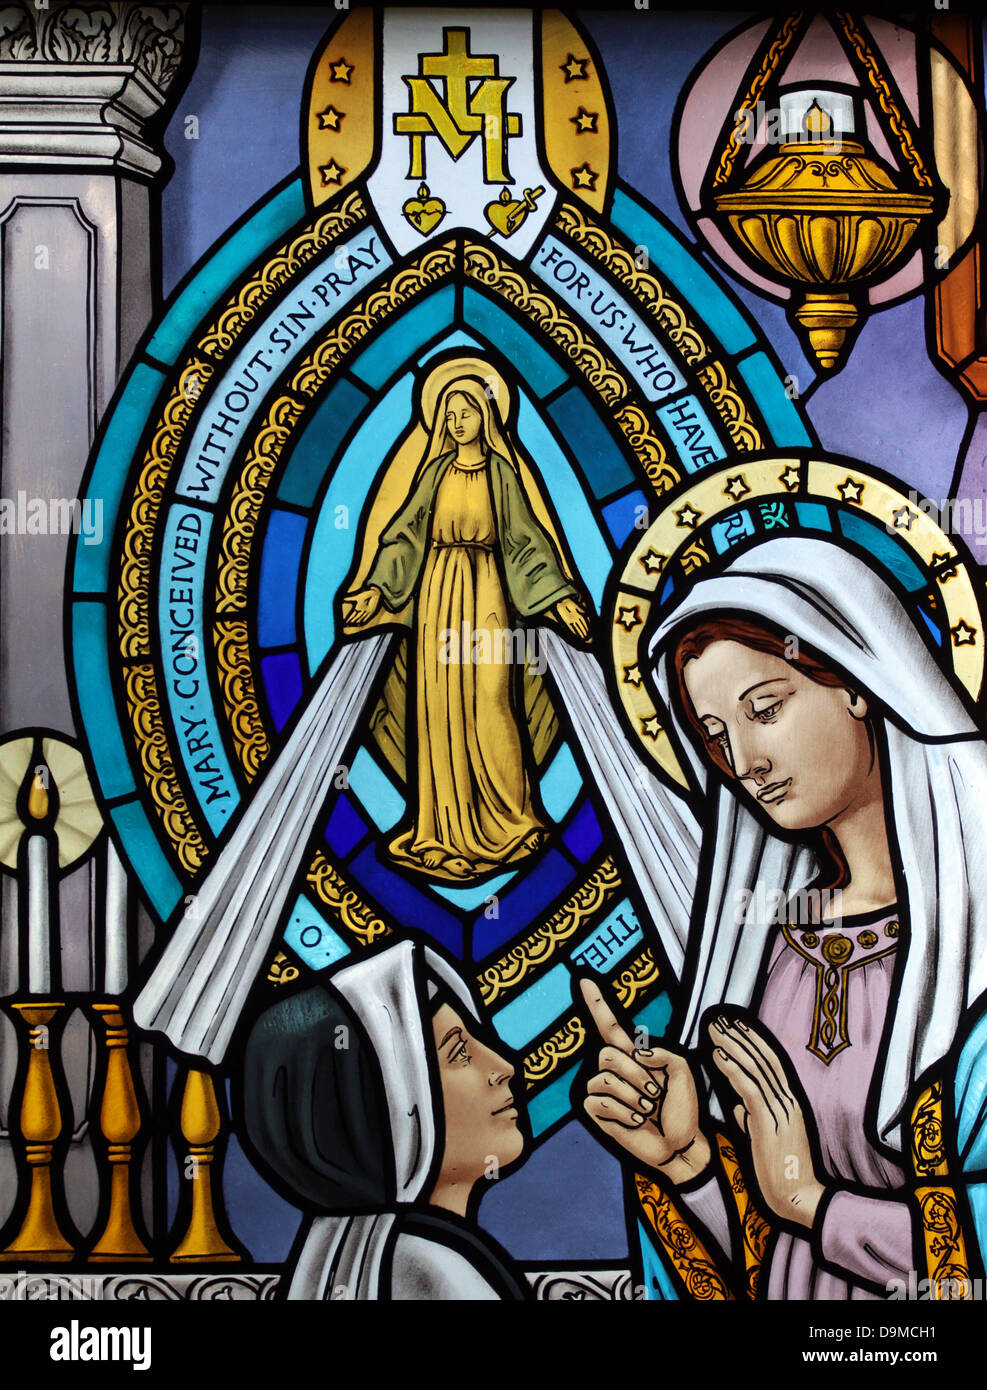 Stained glass art in the windows of the Mary, Queen of the Universe Shrine of Orlando, Florida. - Stock Image